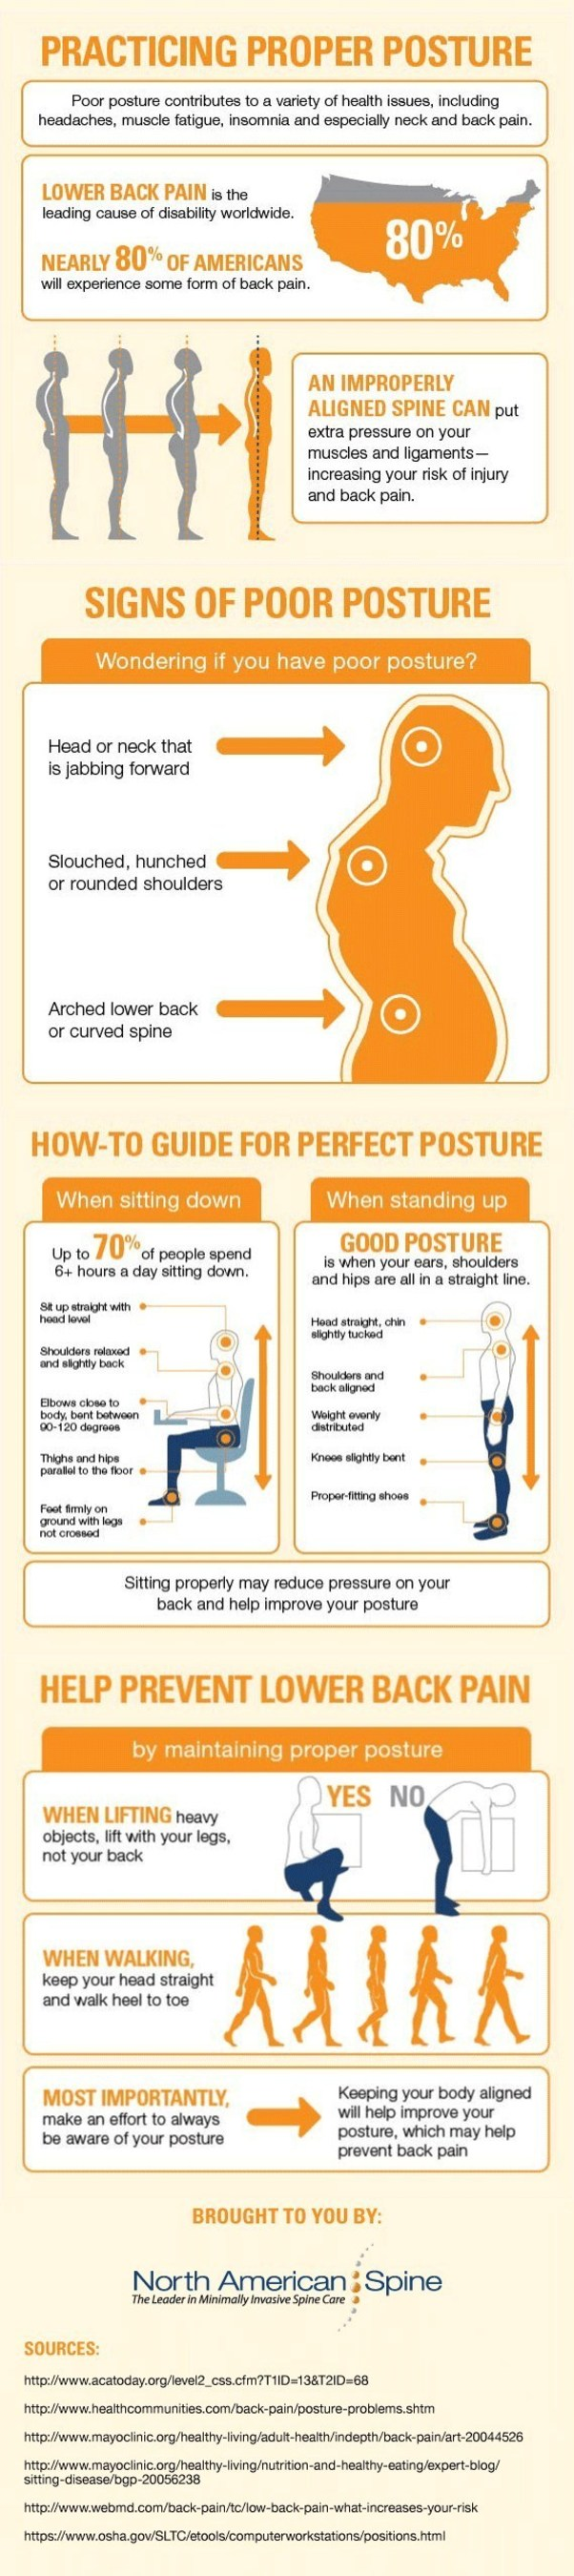 North American Spine™ Releases Practicing Proper Posture Infographic